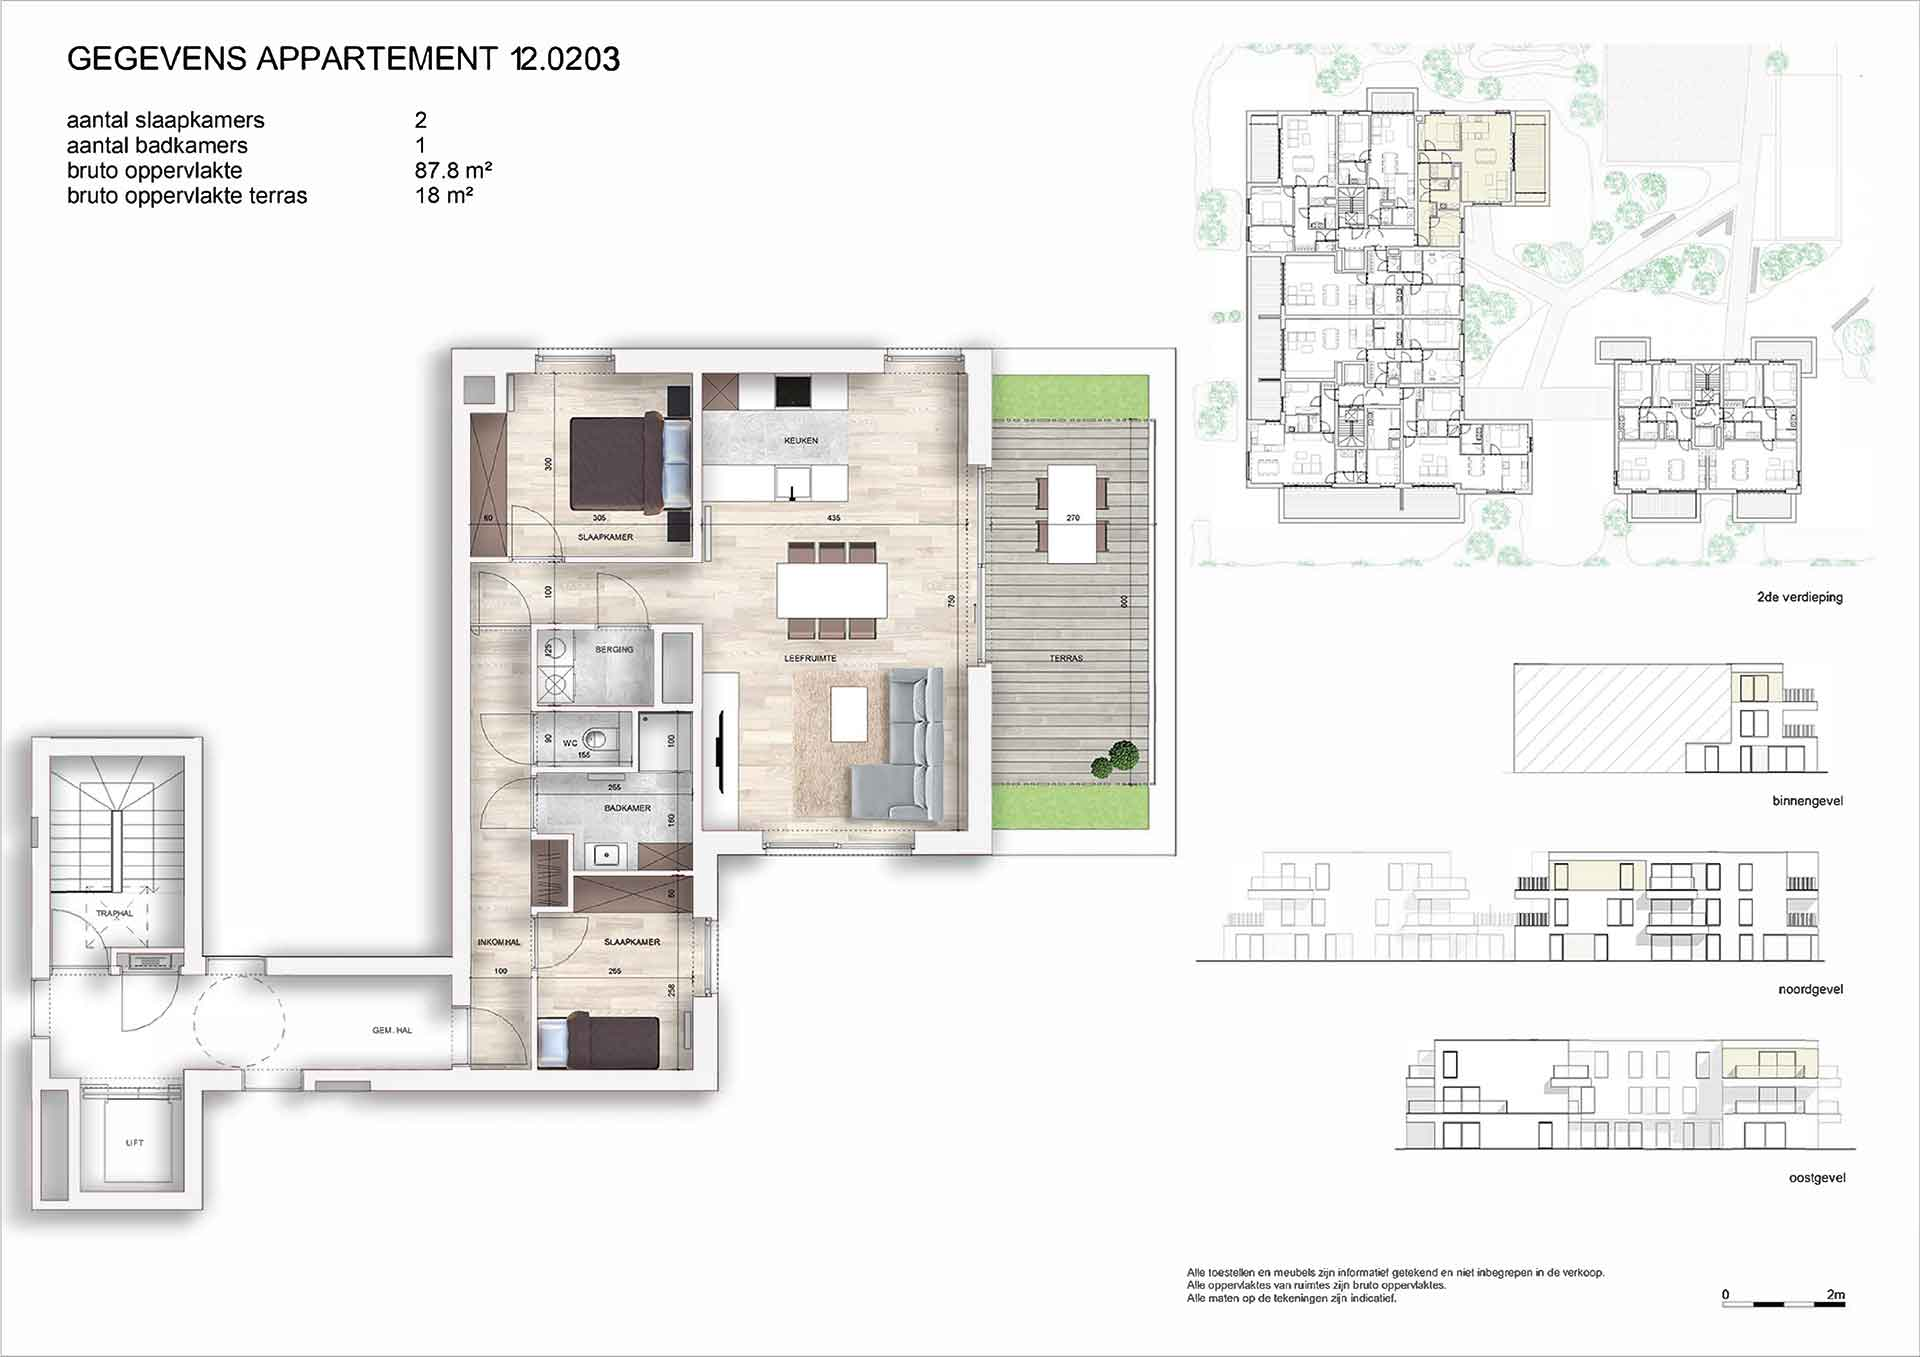 Villa<br/> Duchamp - image appartement-te-koop-nieuwpoort-villa-duchamp-plan-appartement-12-0203 on https://hoprom.be